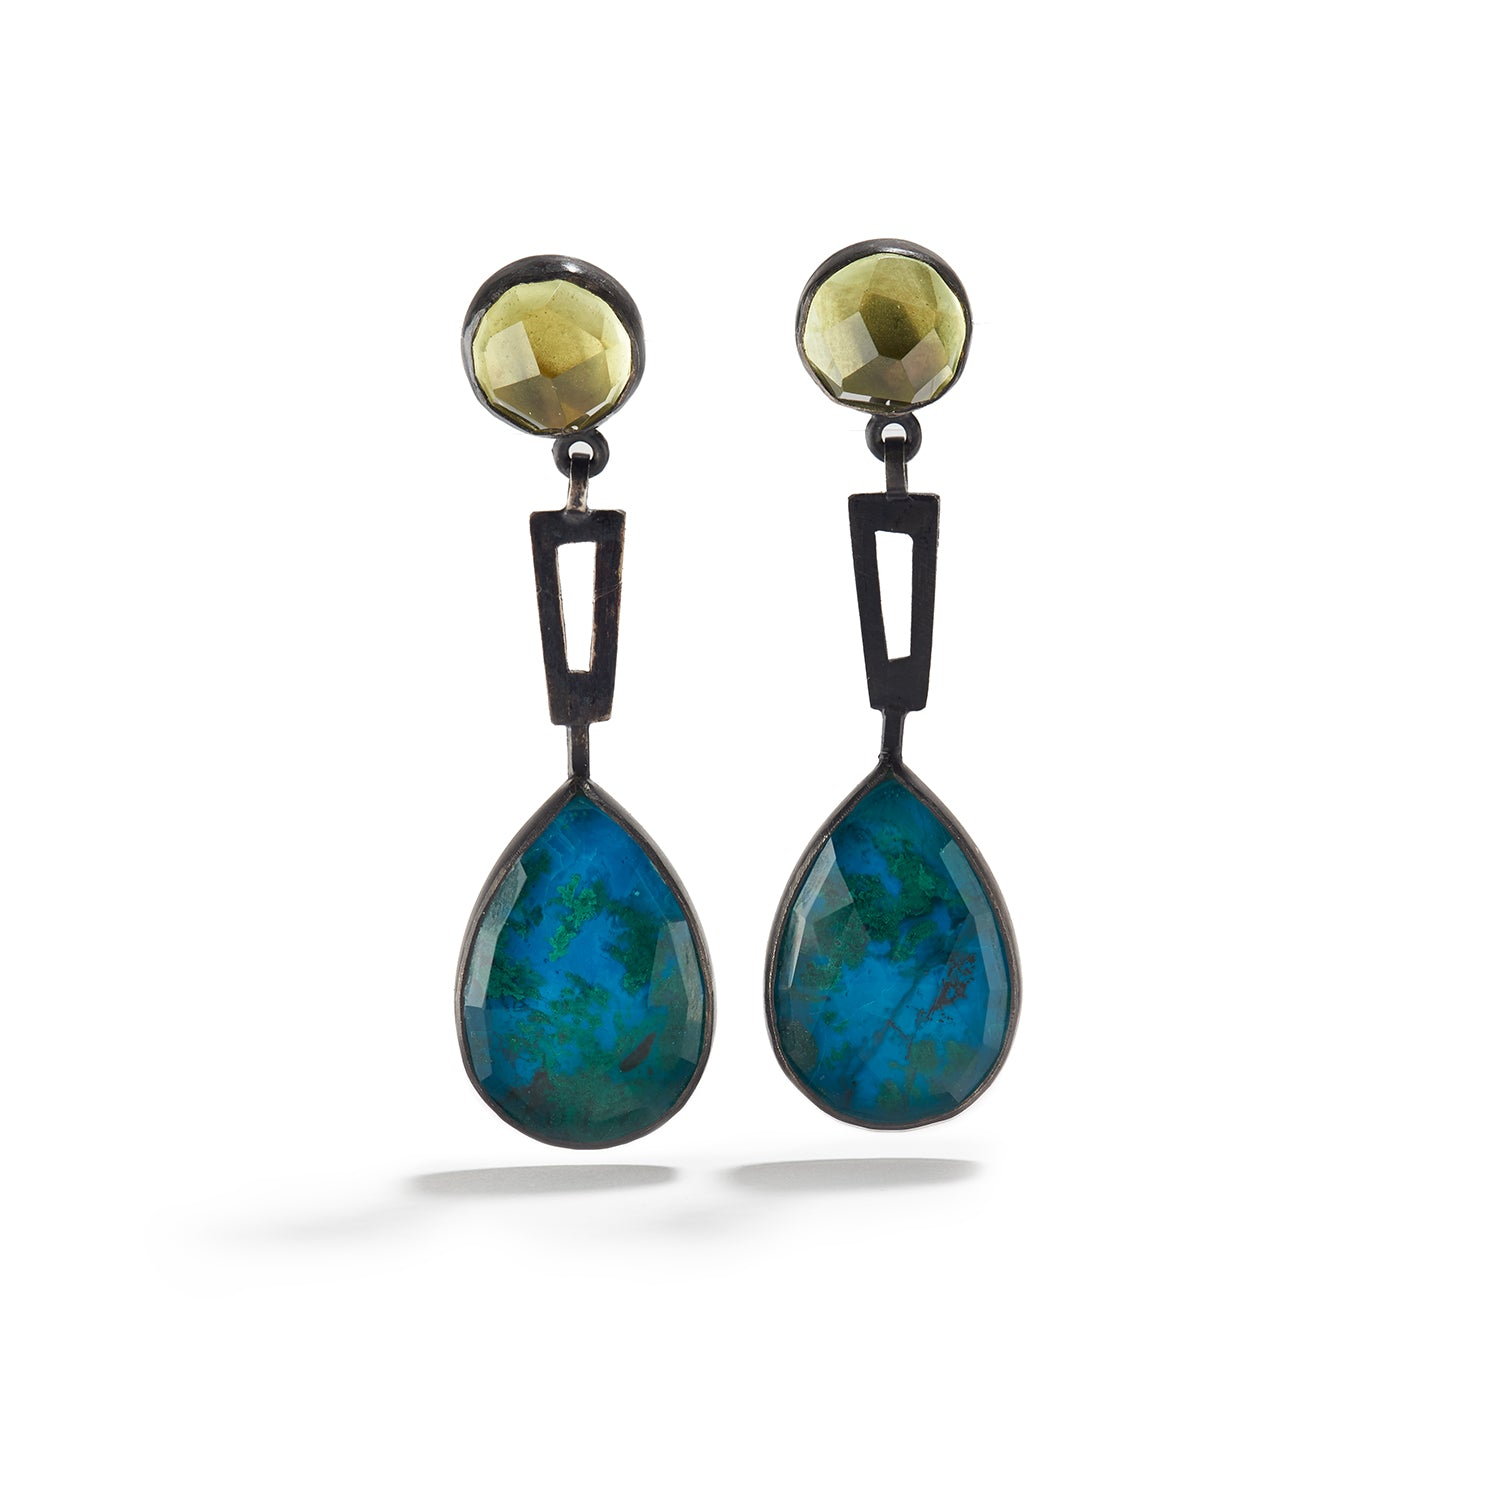 Drops with Lemon Quartz and Chrysocolla